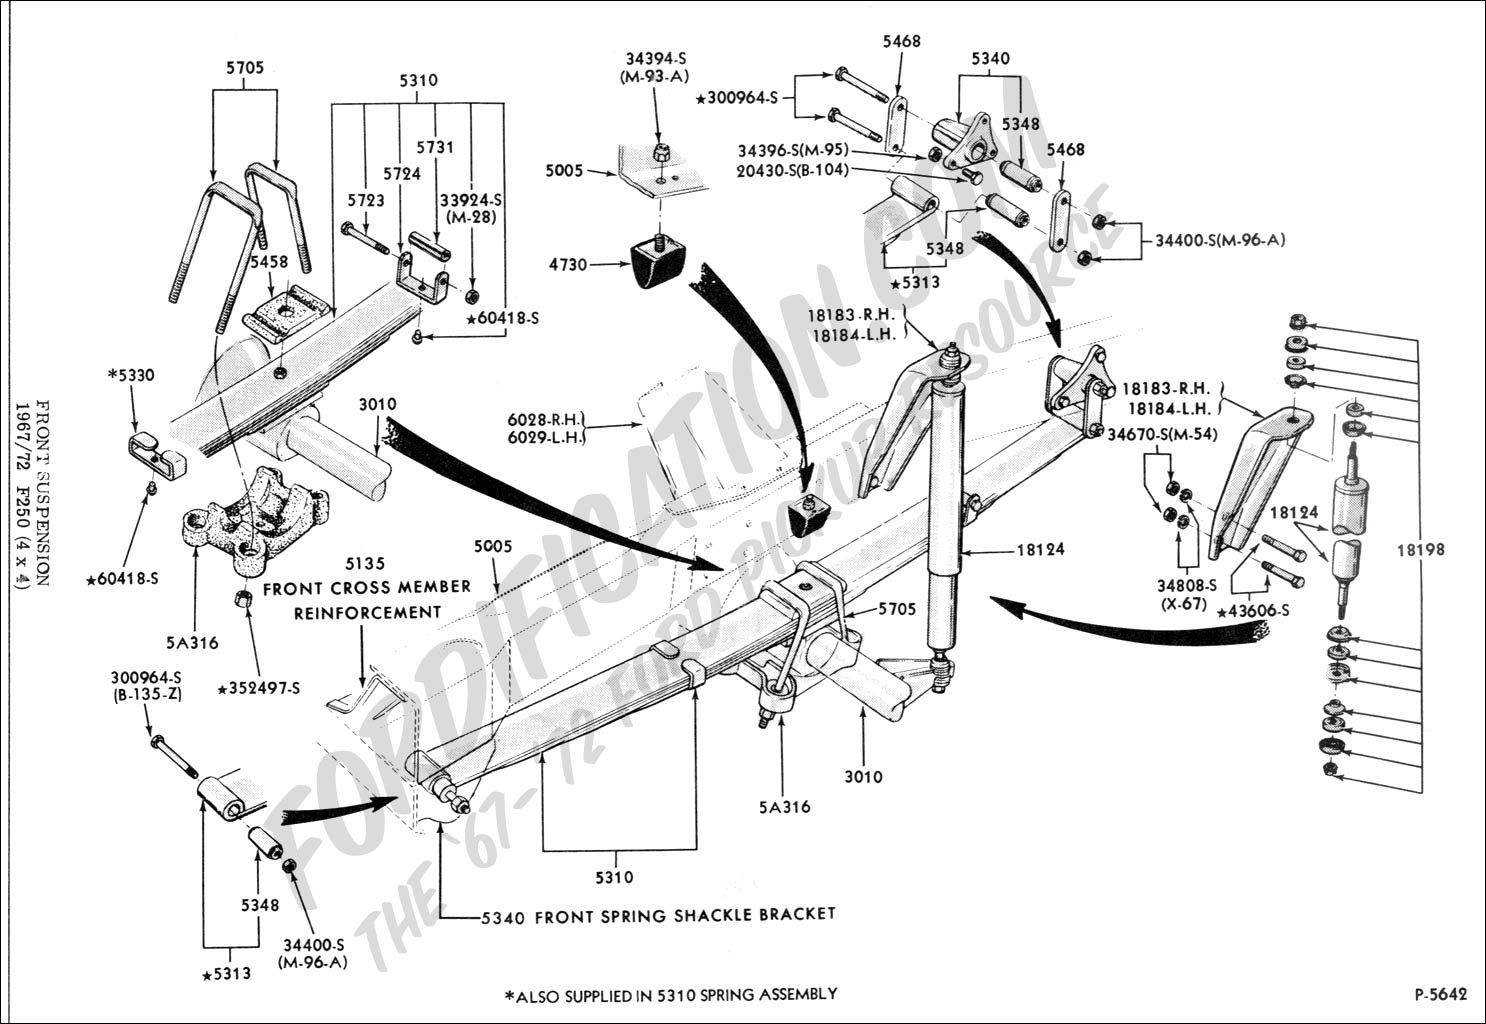 How to replace drag link on a 1996 f 250 4x4 front suspension saferbrowser yahoo image search results pinterest 4x4